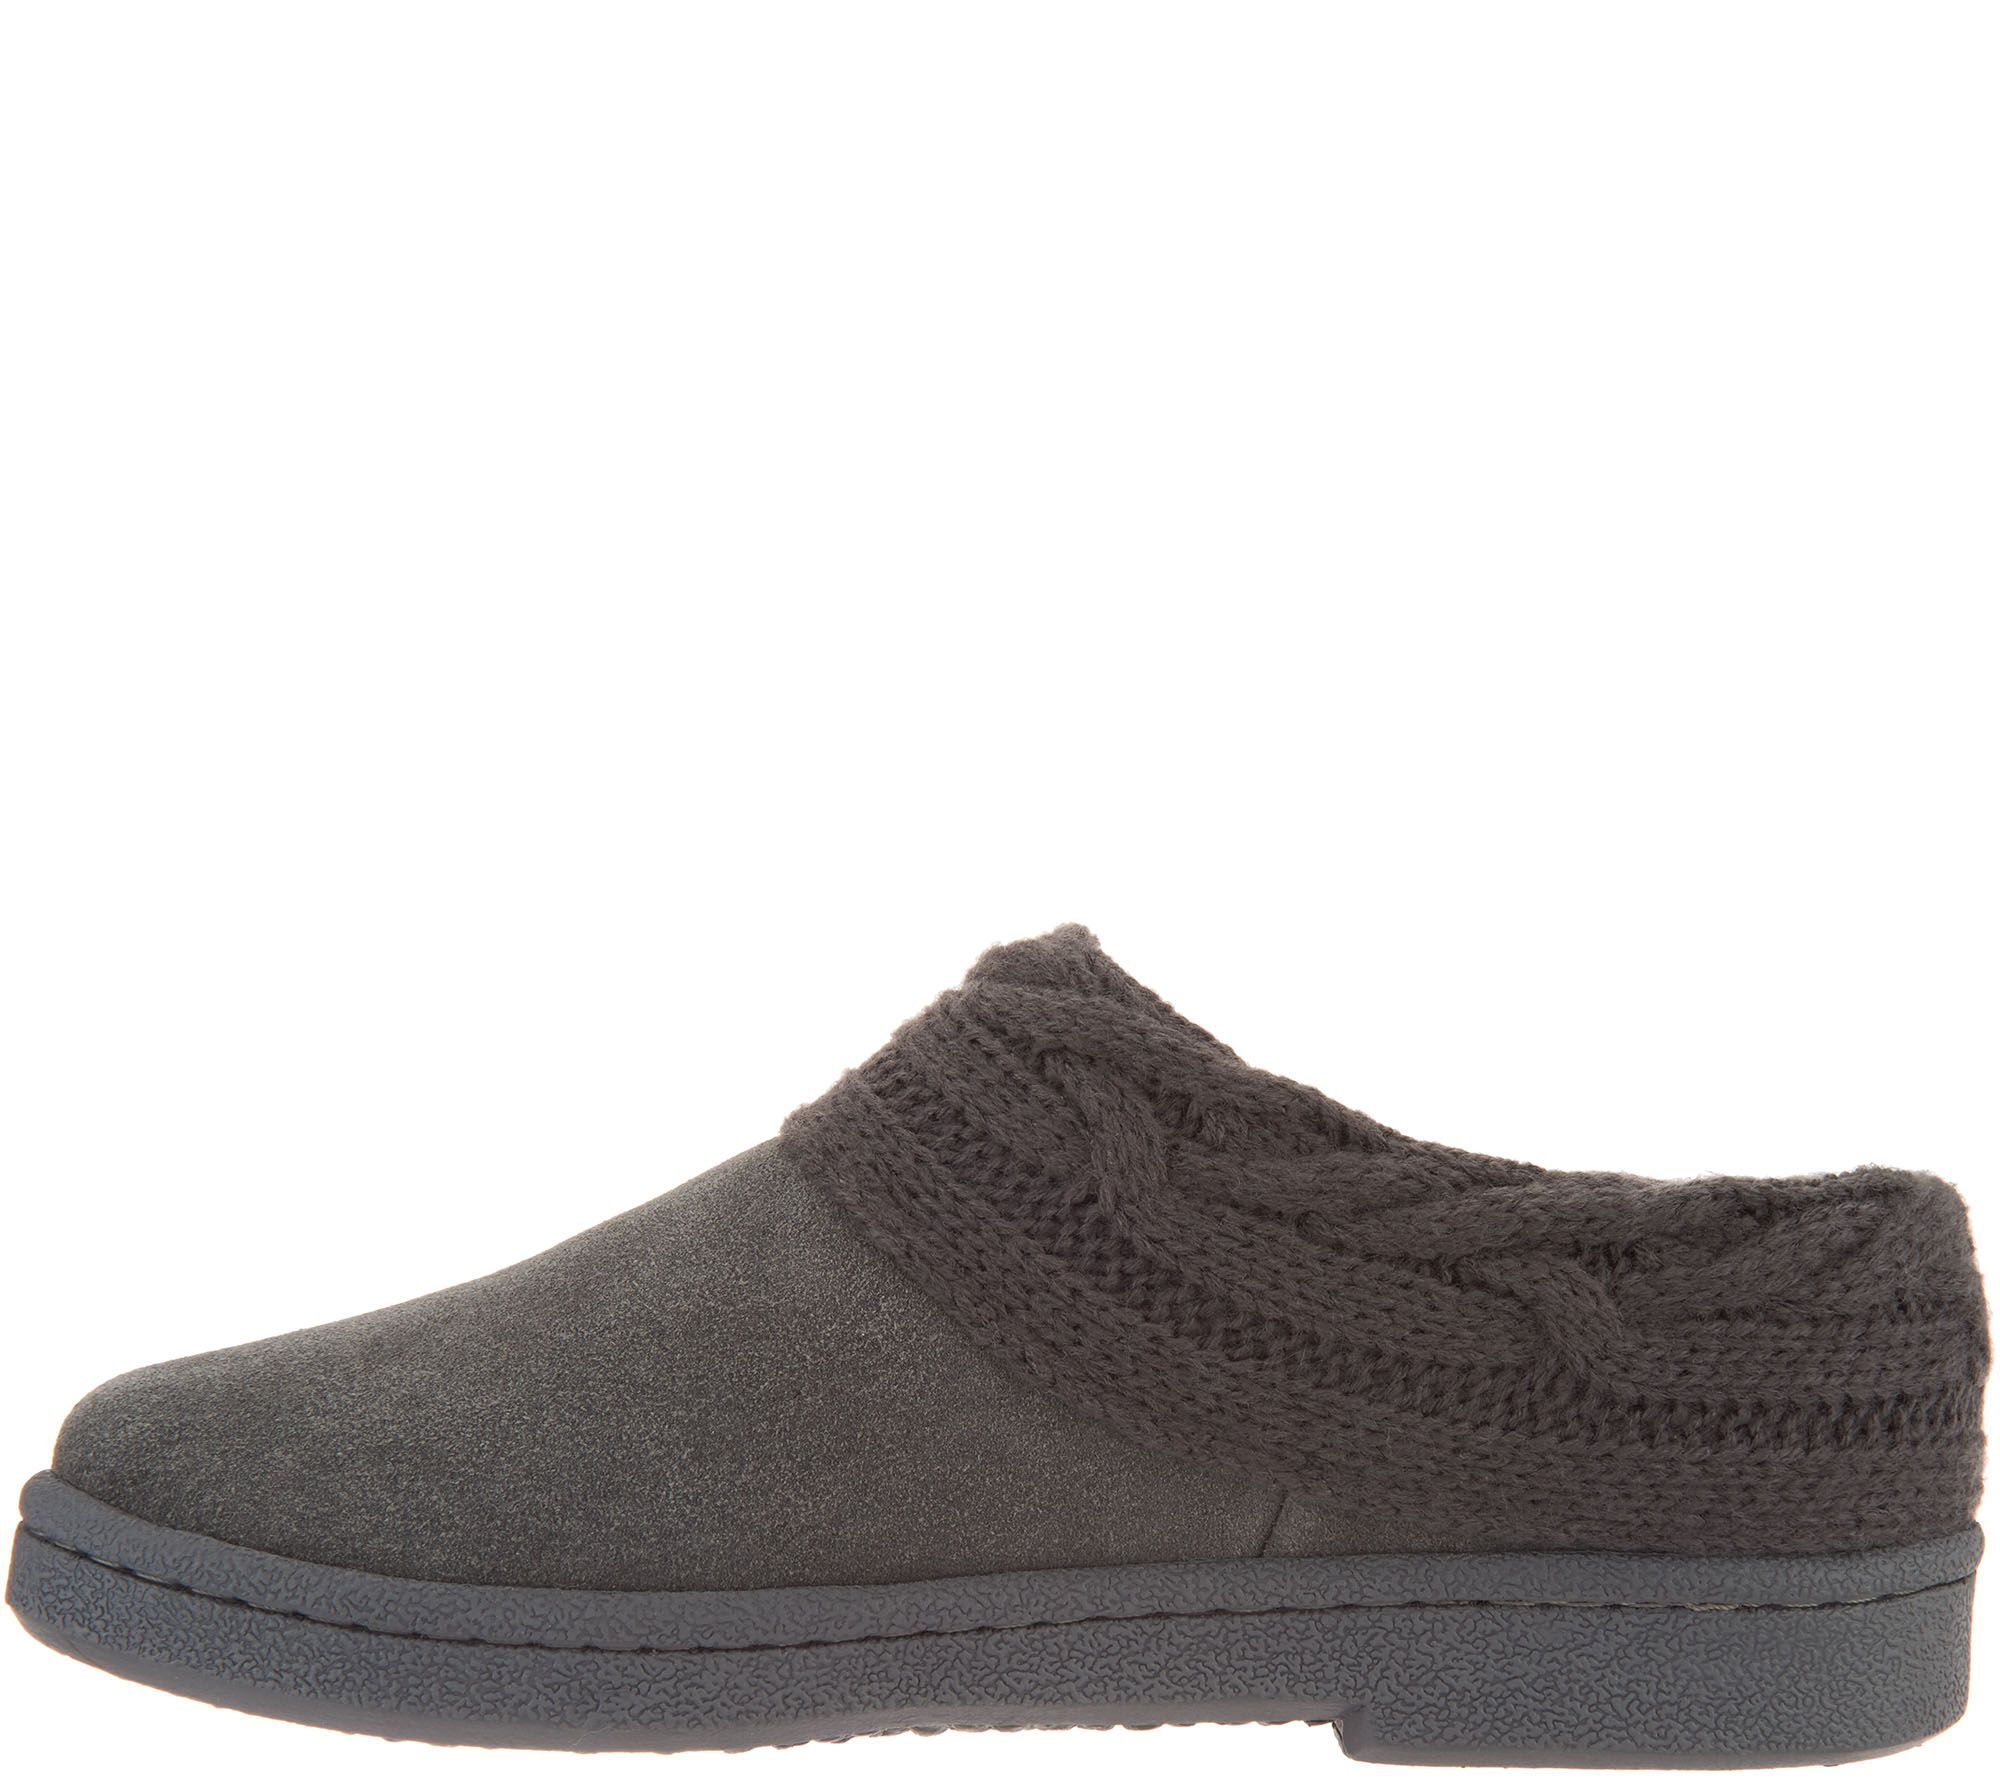 a3ca2f19cf173d Clarks Suede Women s Slippers with Cable Knit Trim - Page 1 — QVC.com